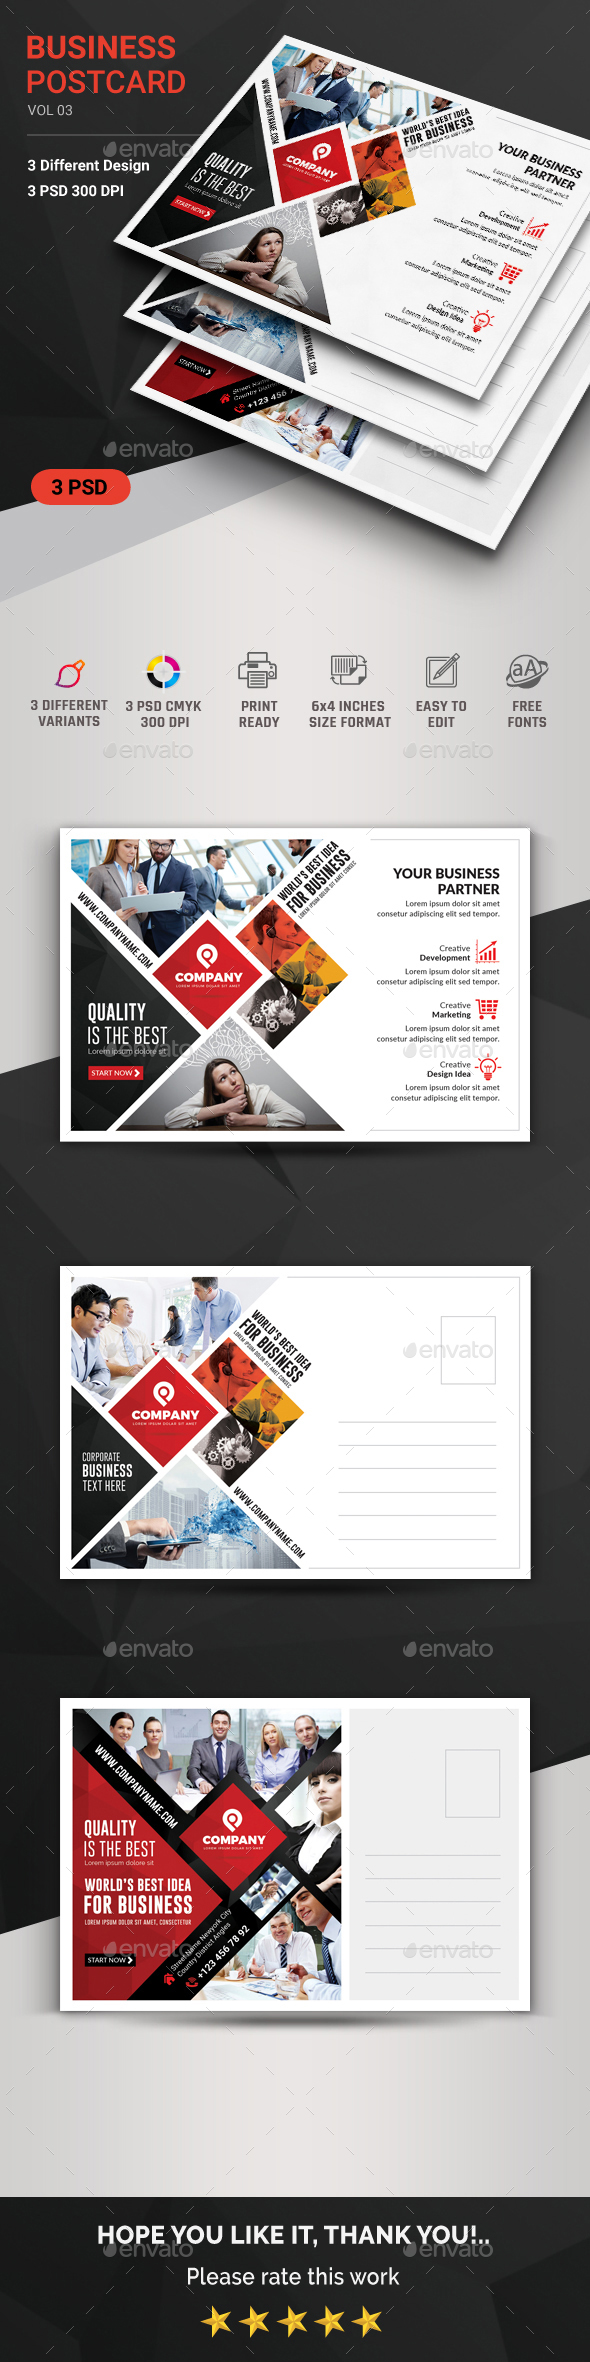 Corporate Postcard Graphics Designs Templates